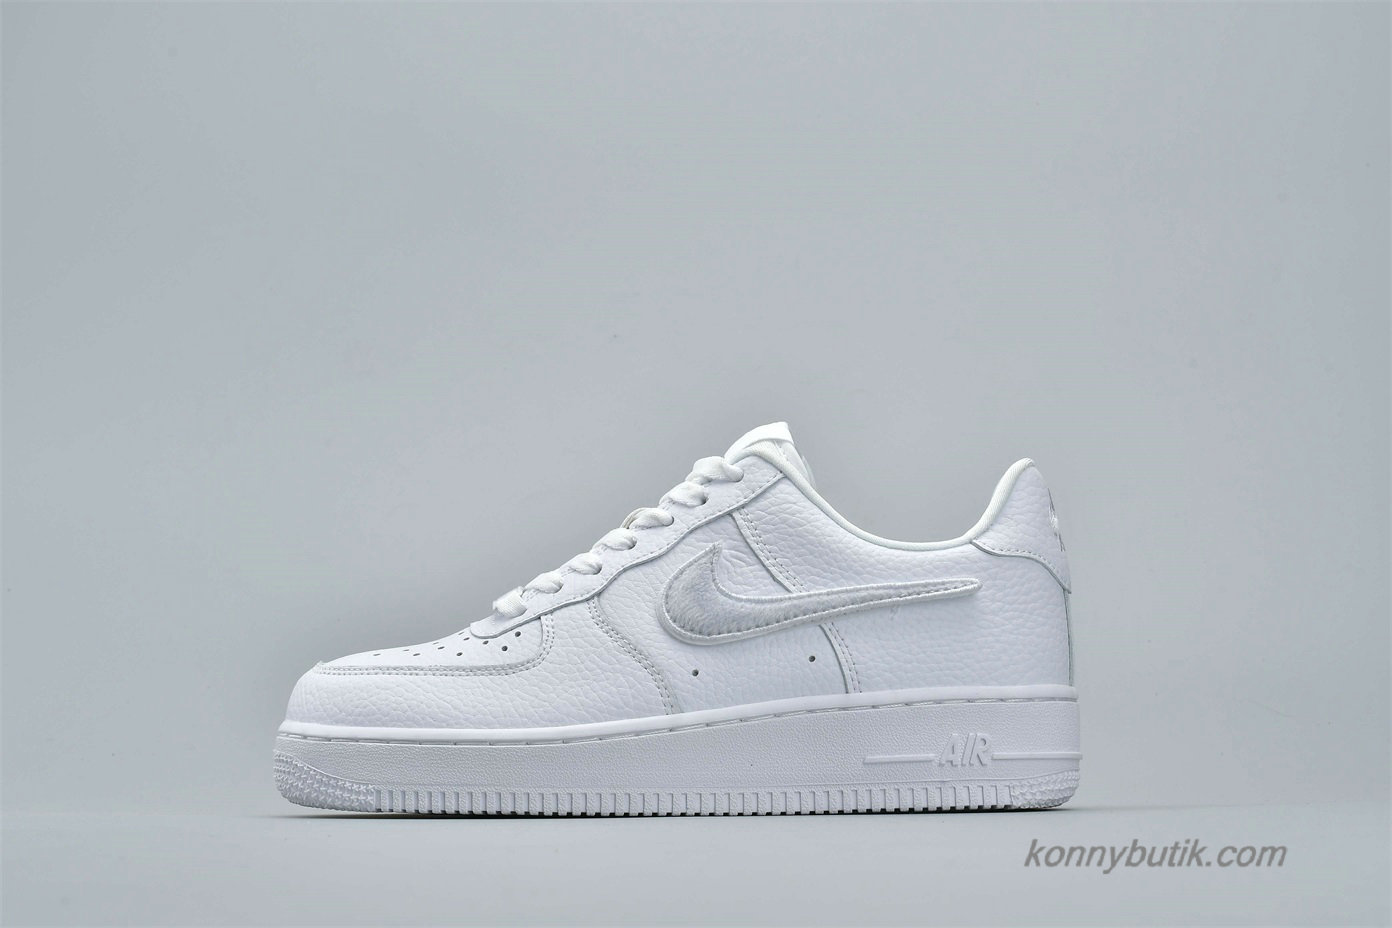 Nike Air Force 1 Low Dame Sko Hvid (AQ3621-111)